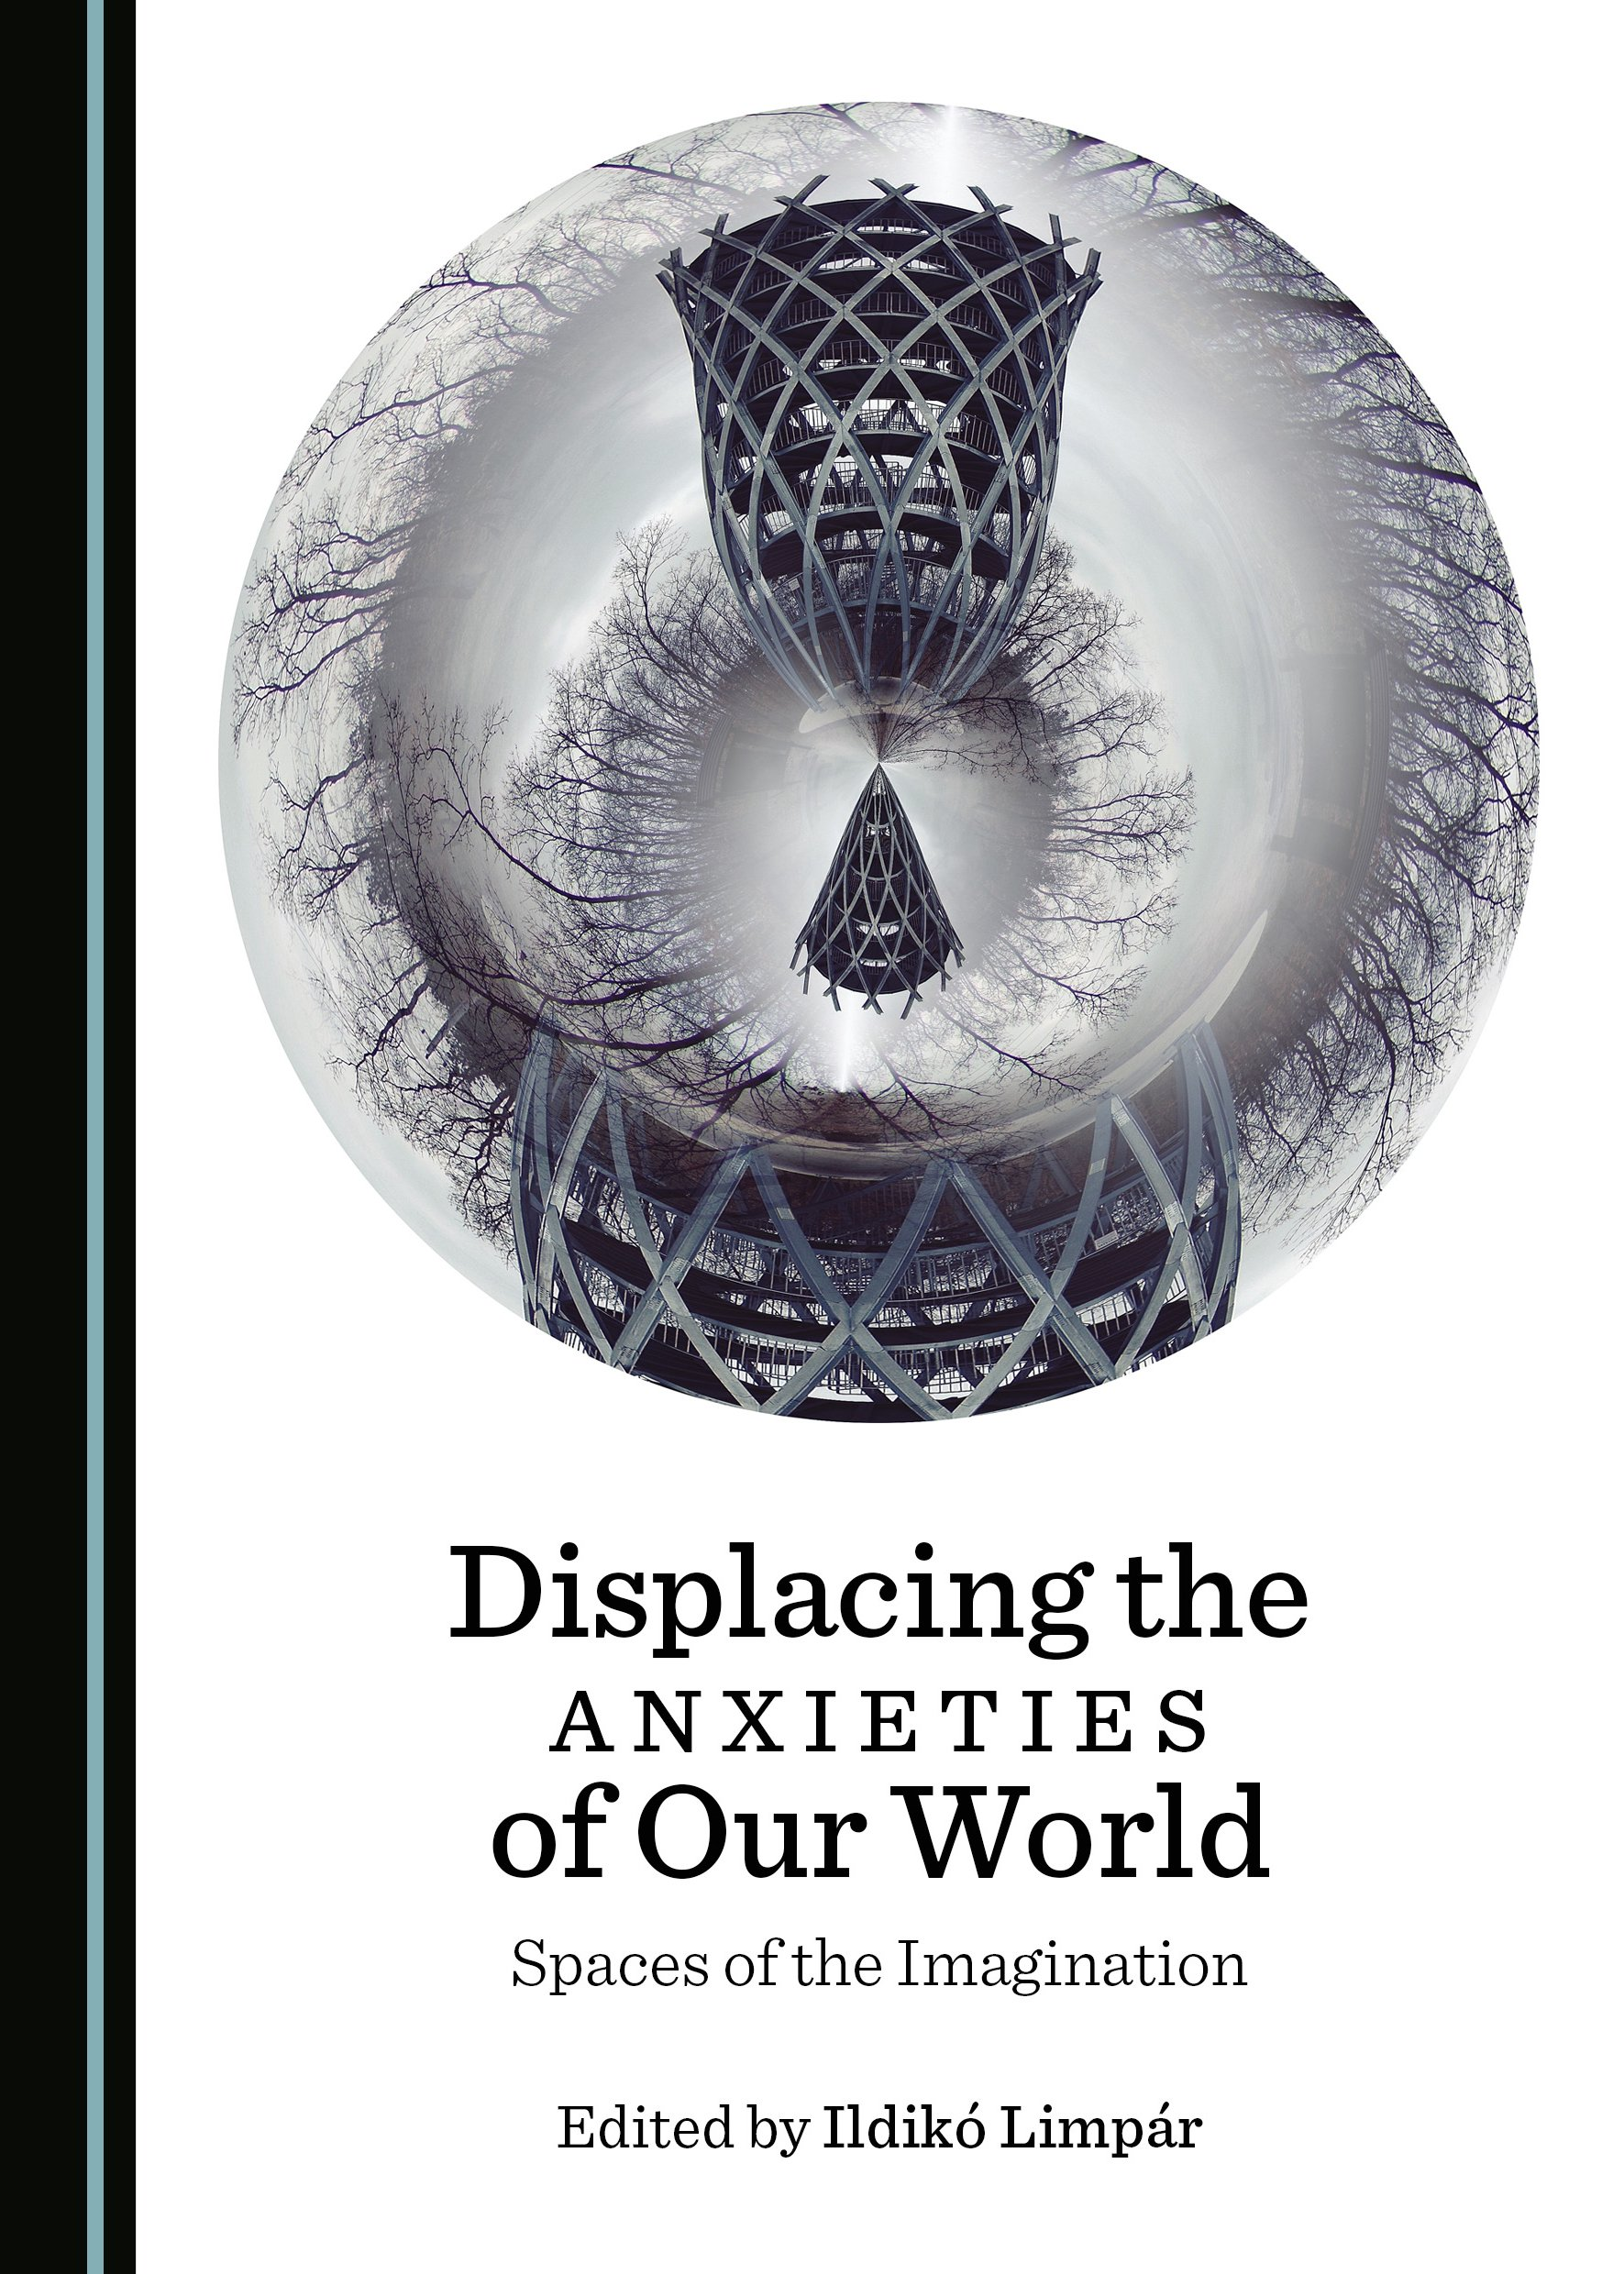 Displacing the Anxieties of Our World: Spaces of the Imagination